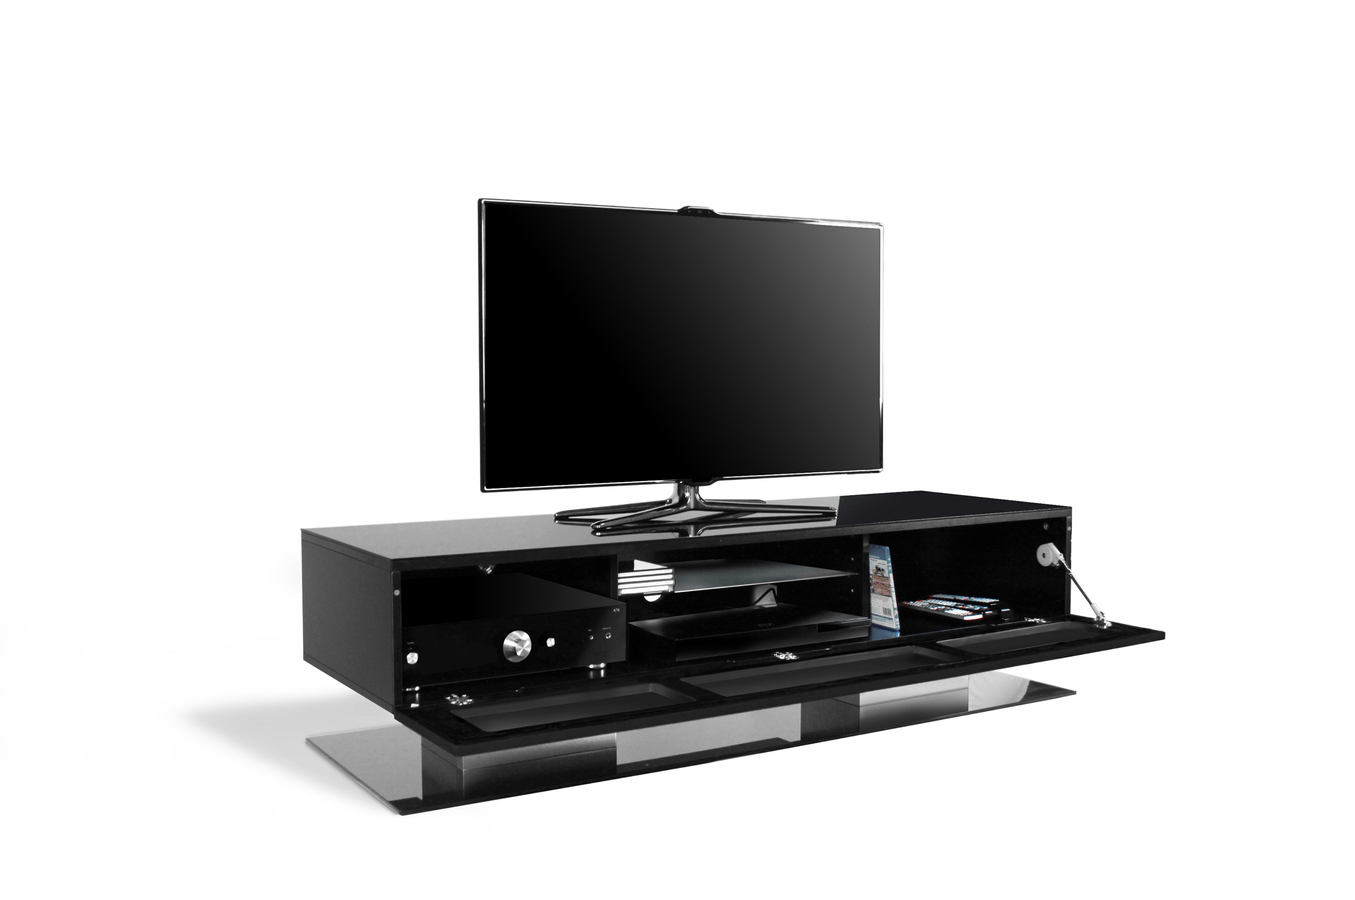 Meuble Tv Norstone Esse Meuble Tv Norstone Tably (3723461) | Darty